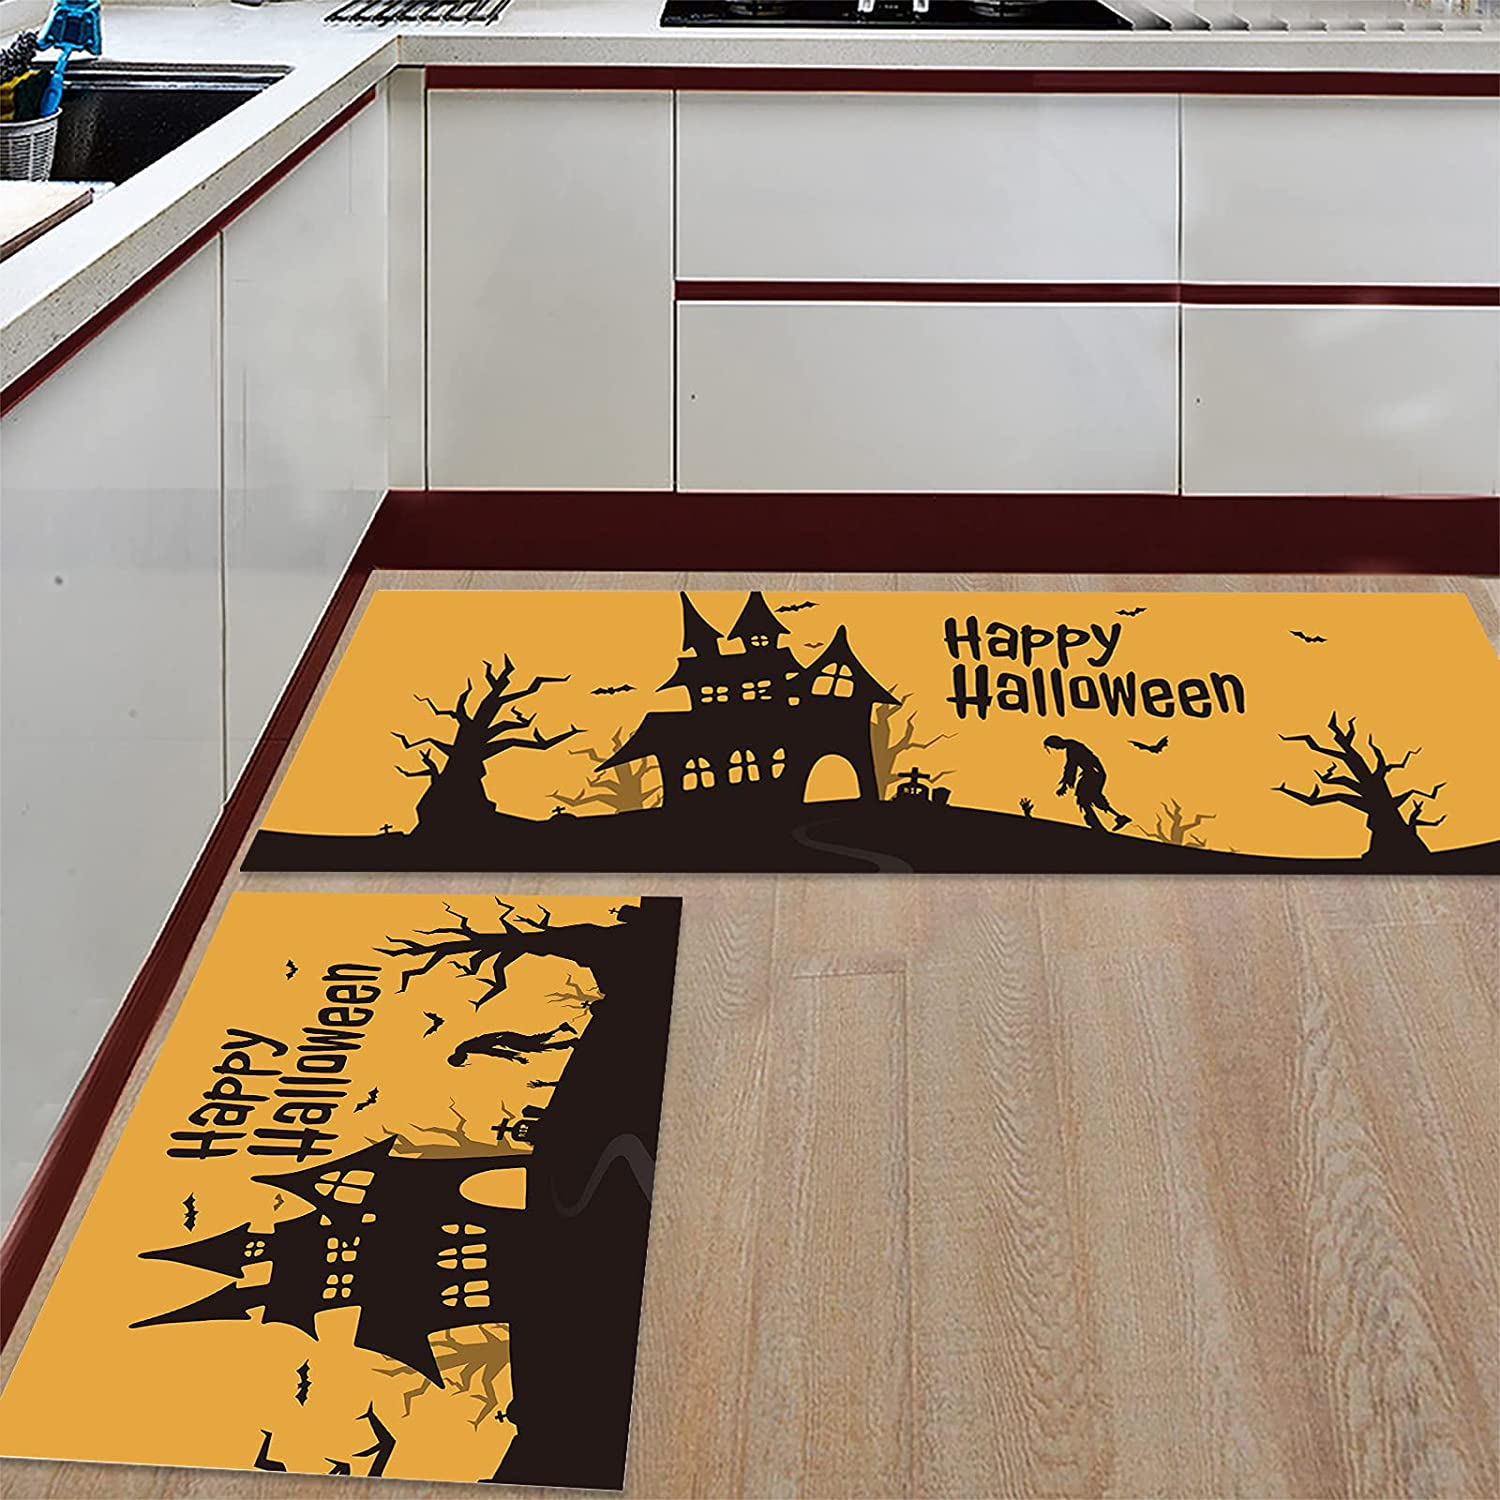 Anmevor Kitchen Rug Sets 2 Attention brand Piece Door Happy Mats Non-Slip Indianapolis Mall Rugs